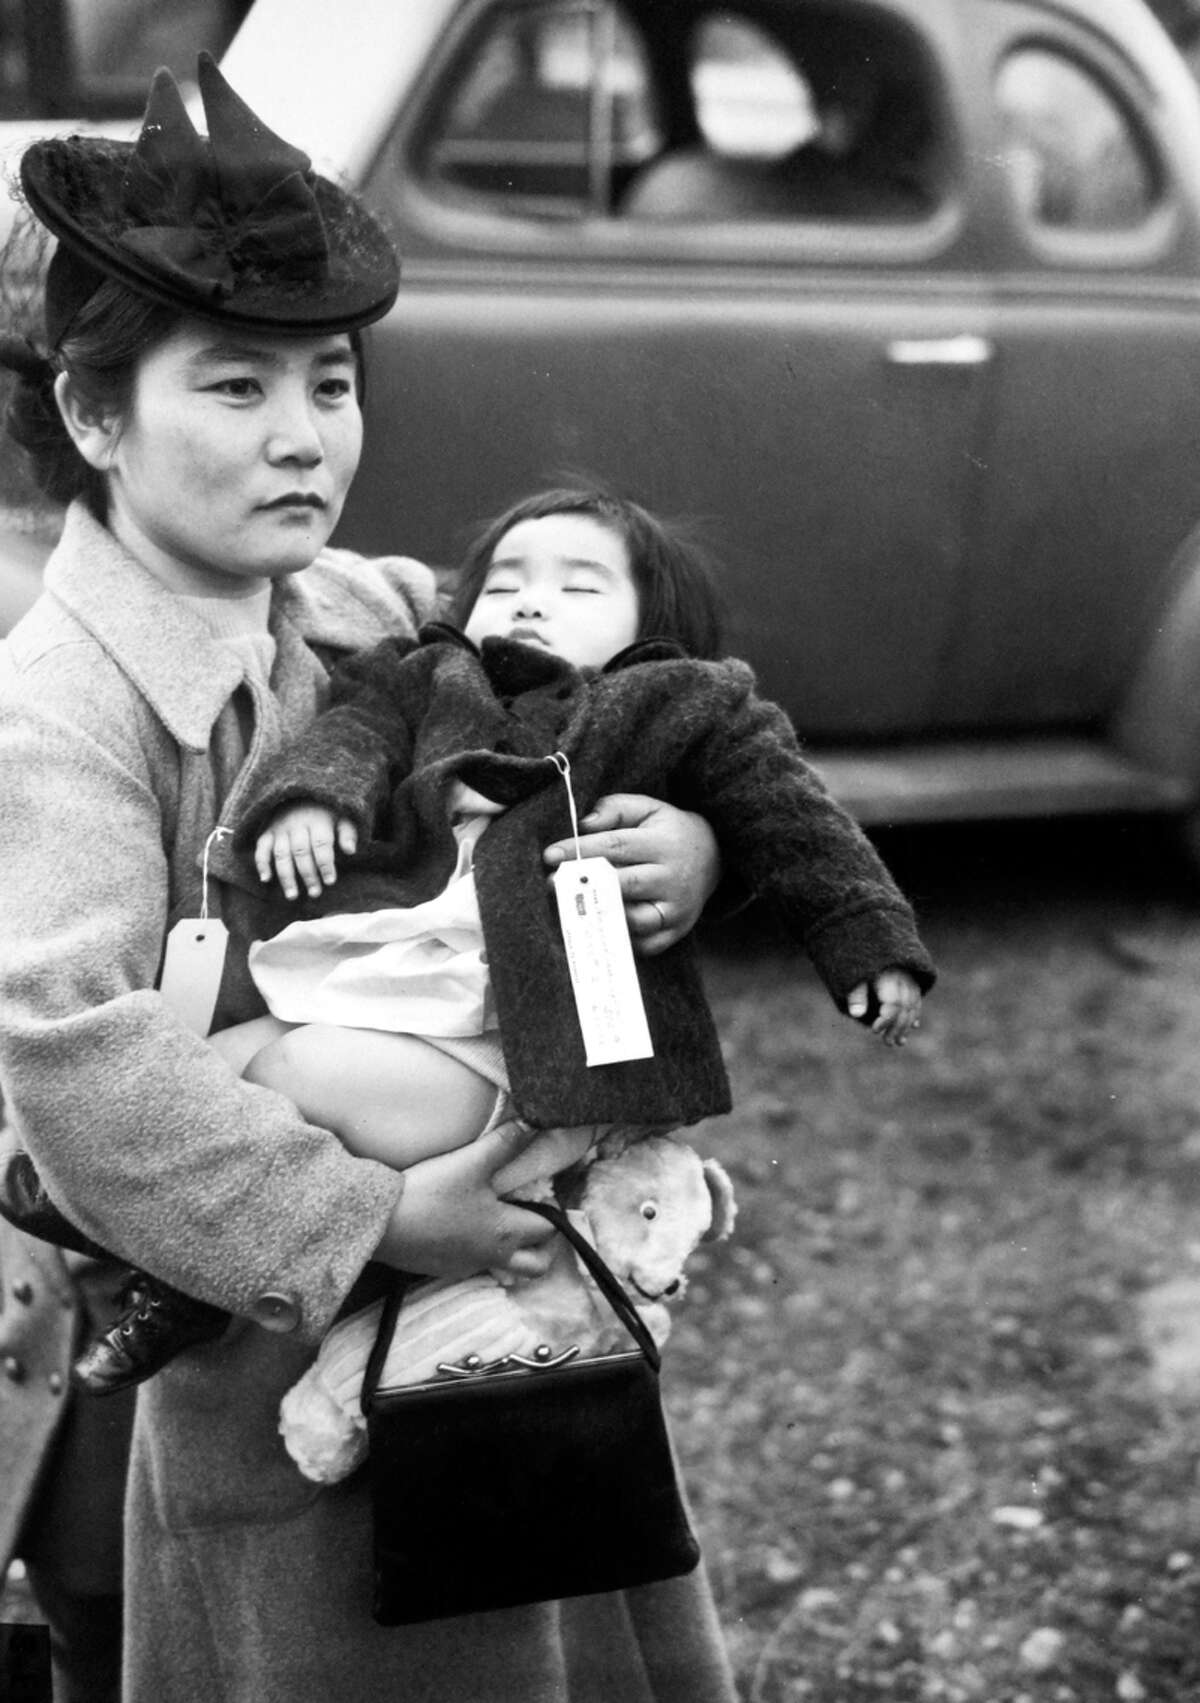 With her daughter asleep in her arms, Fumiko Hayashida waits to board a ferry from Bainbridge Island on March 30, 1942. The pair were being deported to an internment camp for Japanese-Americans in Manzanar, Calif. This image, taken by a P-I photographer, has been published around the world and since 1976 the negative has been preserved at the Museum of History and Industry. Years ago, staff there helped identify Hayashida by enlarging the photo and reading the tags she and her daughter wore.